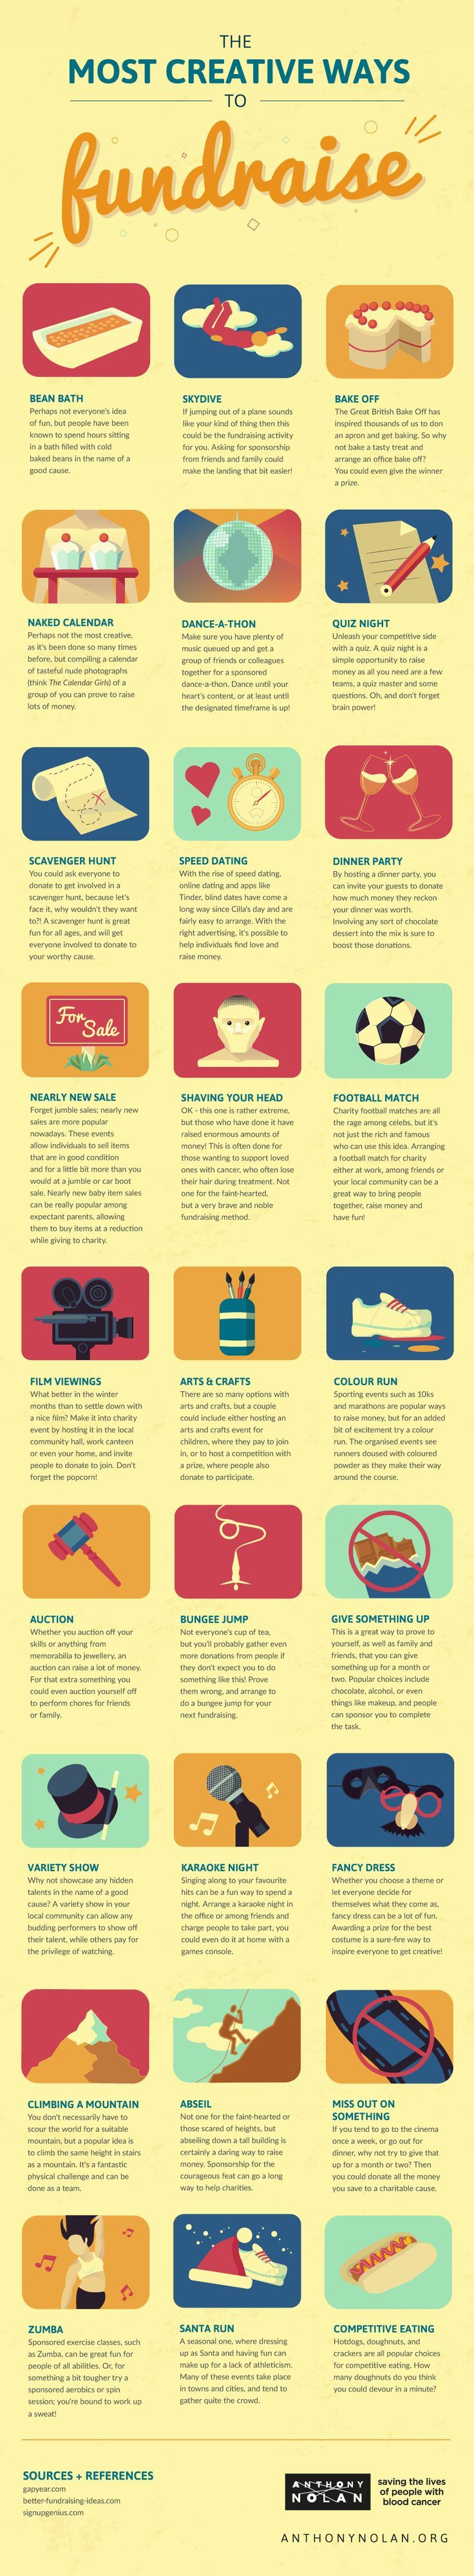 The Most Creative Ways to Fundraise #infographic                                                                                                                                                                                 More